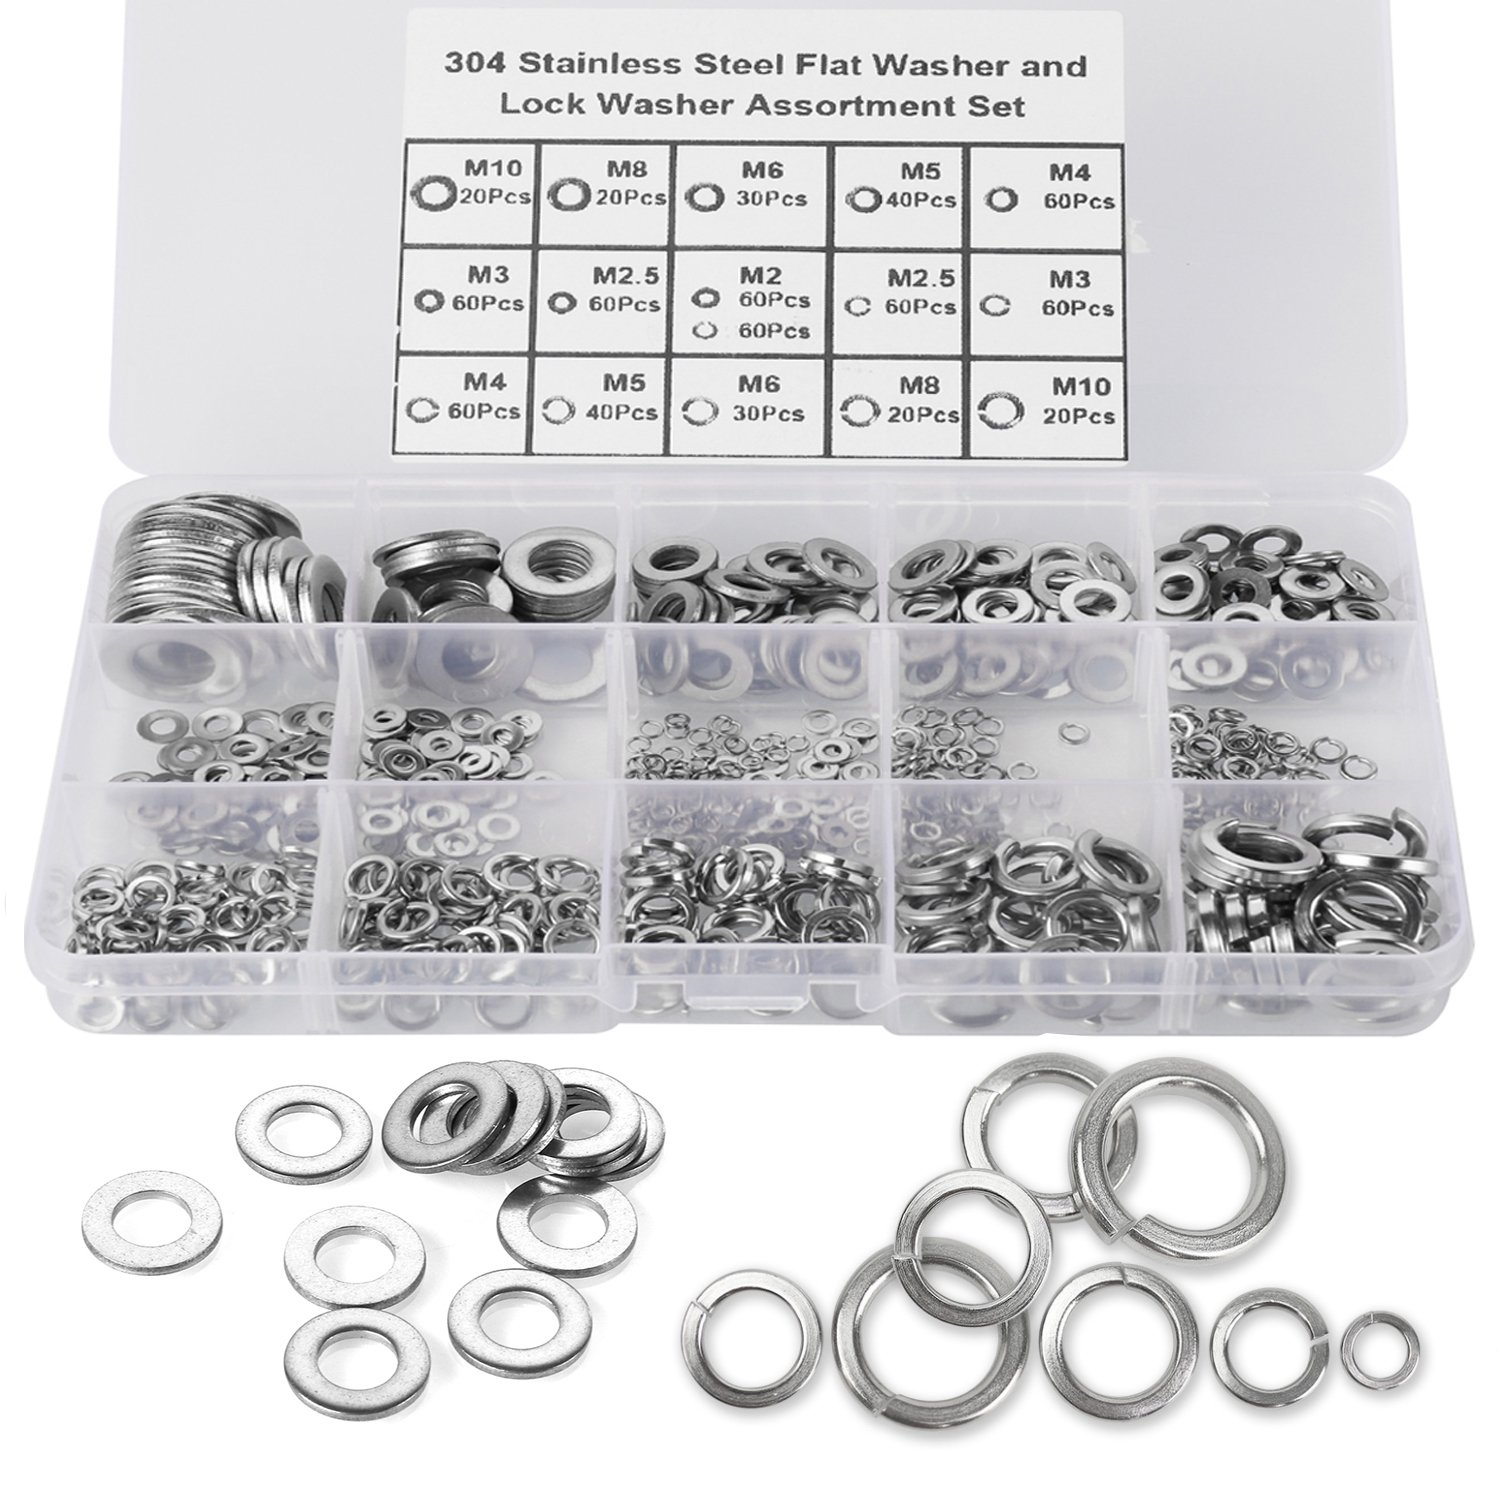 HanTof 700pcs [8-Size] 304 Stainless Steel Flat Washer and Lock Washer Assortment Set 8 Sizes-M2 M2.5 M3 M4 M5 M6 M8 M10